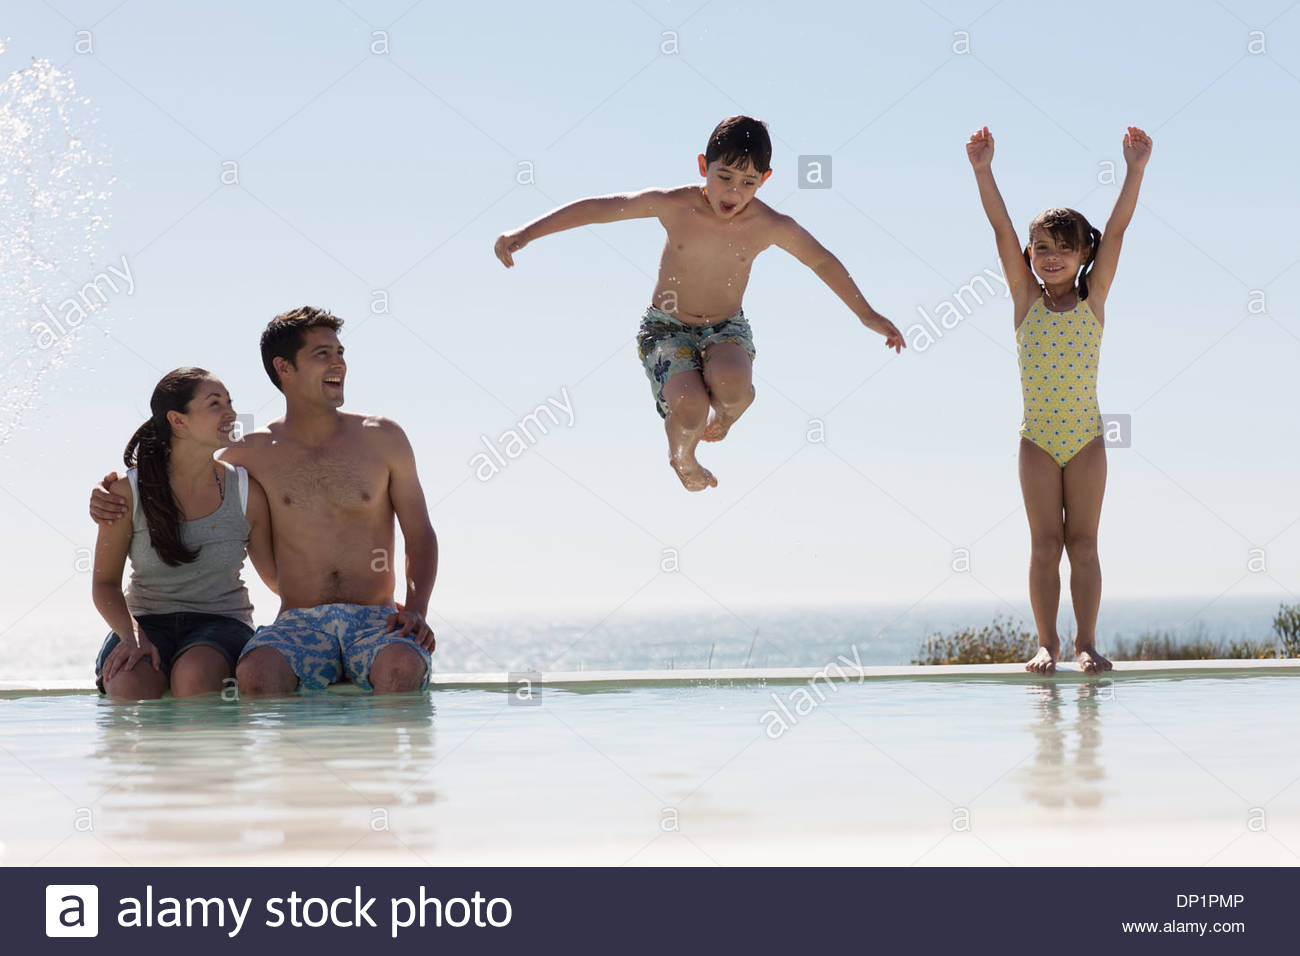 Jouer en famille piscine Photo Stock